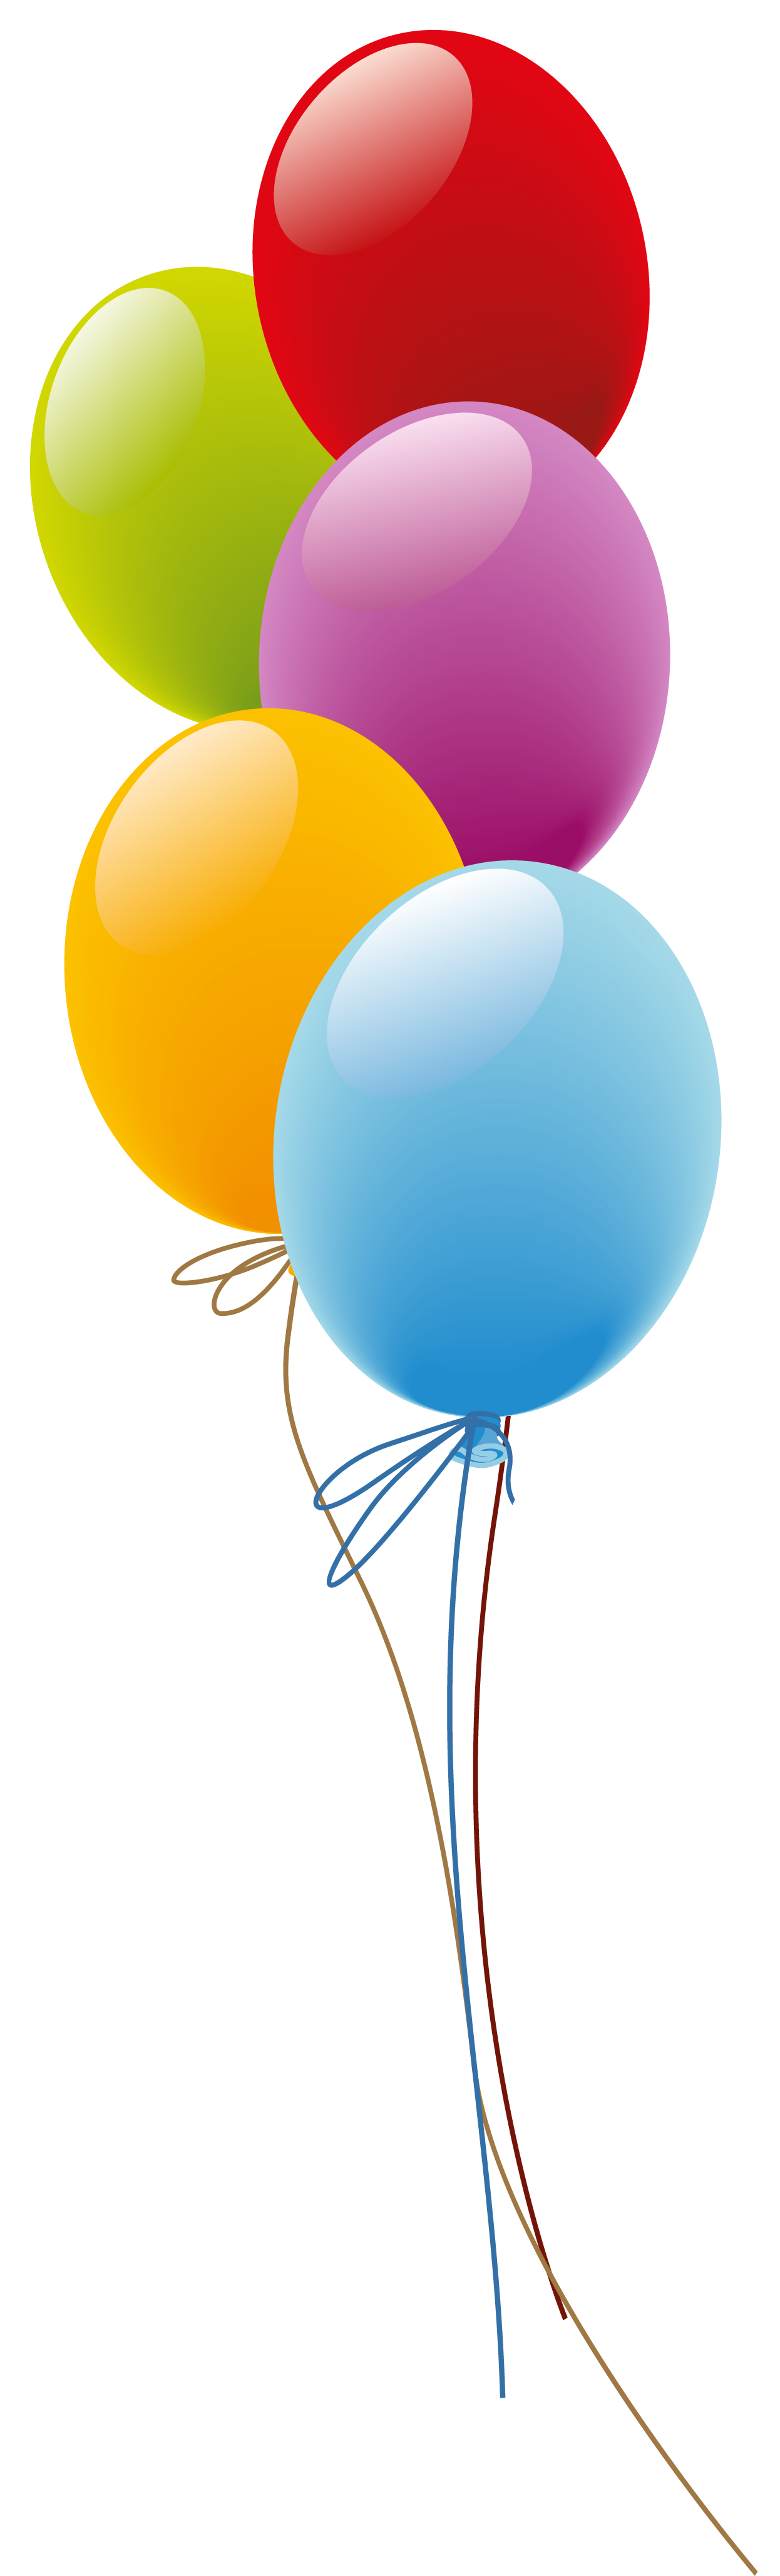 Balloons png picture artistic. Clipart balloon winter